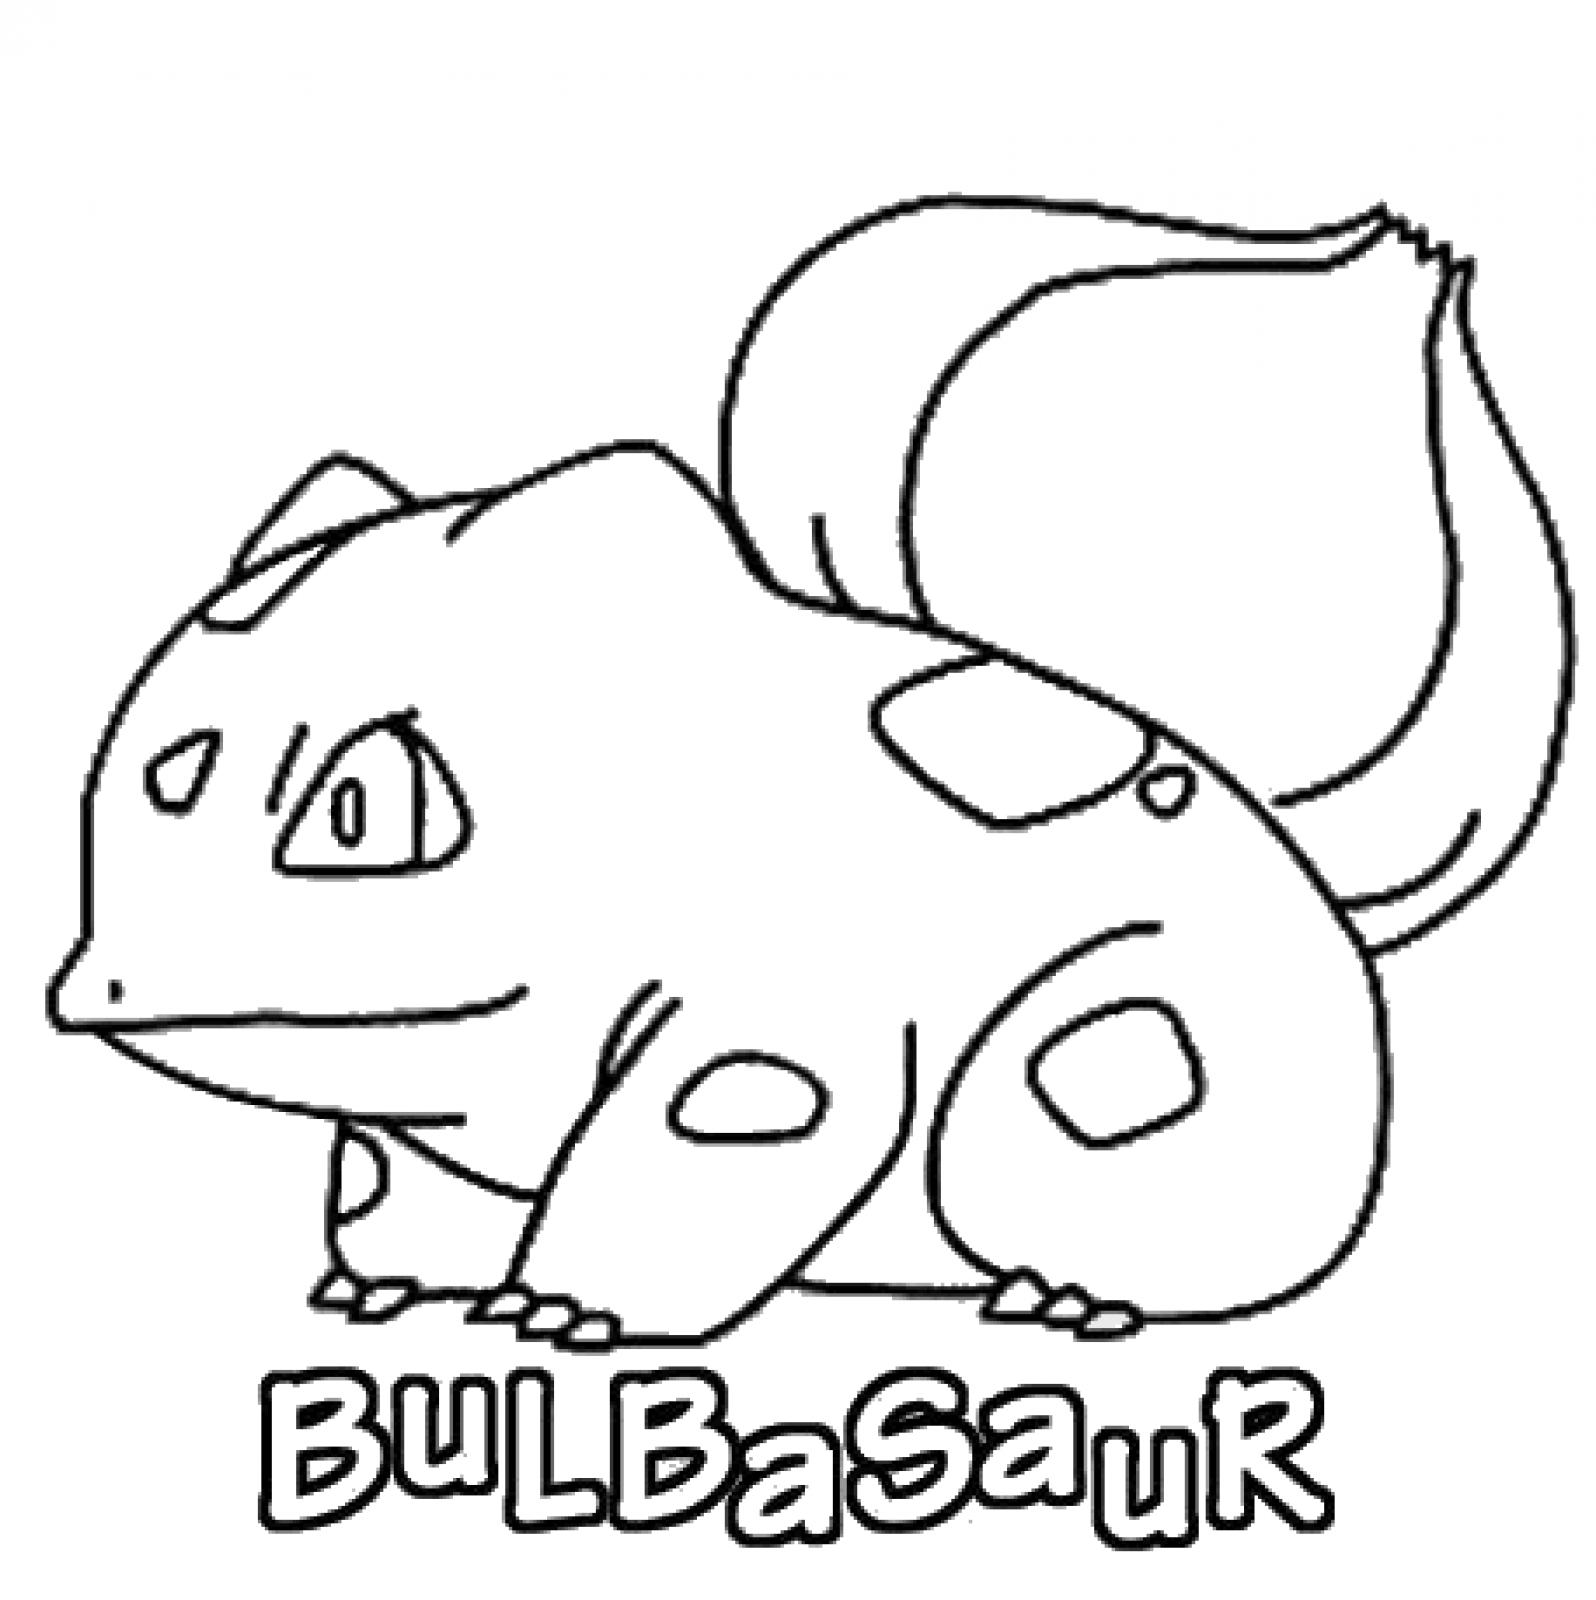 Bulbasaur Coloring Pages Coloring Home Bulbasaur Coloring Pages